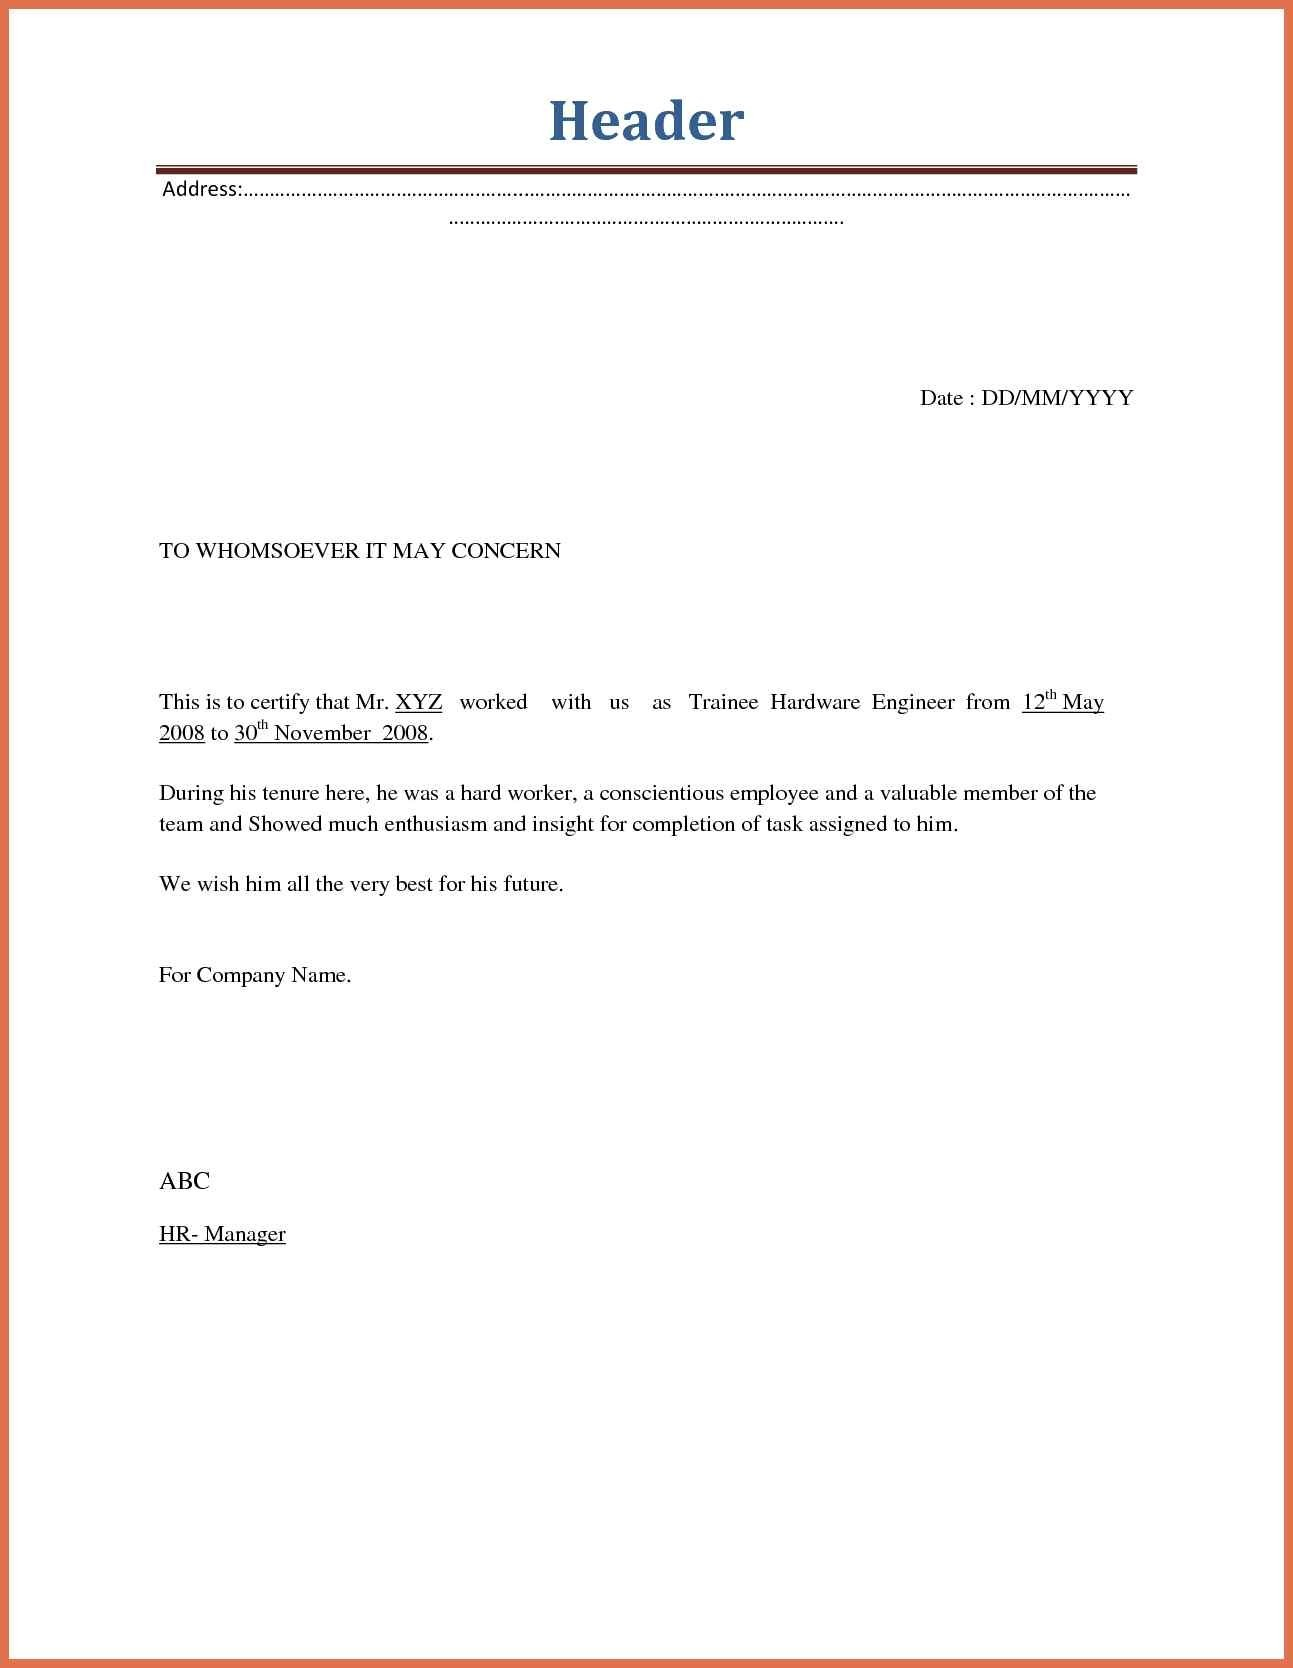 Job Abandonment Letter Template Free on military leave letter template, layoff letter template, suspension letter template, sick leave letter template, disability letter template, termination of employment letter template, personal leave letter template, lease termination letter template, social security letter template, retirement letter template, employment verification letter template, voluntary resignation letter template, transfer letter template, lack of work letter template, formal letter format template, return of property letter template, discharge letter template,